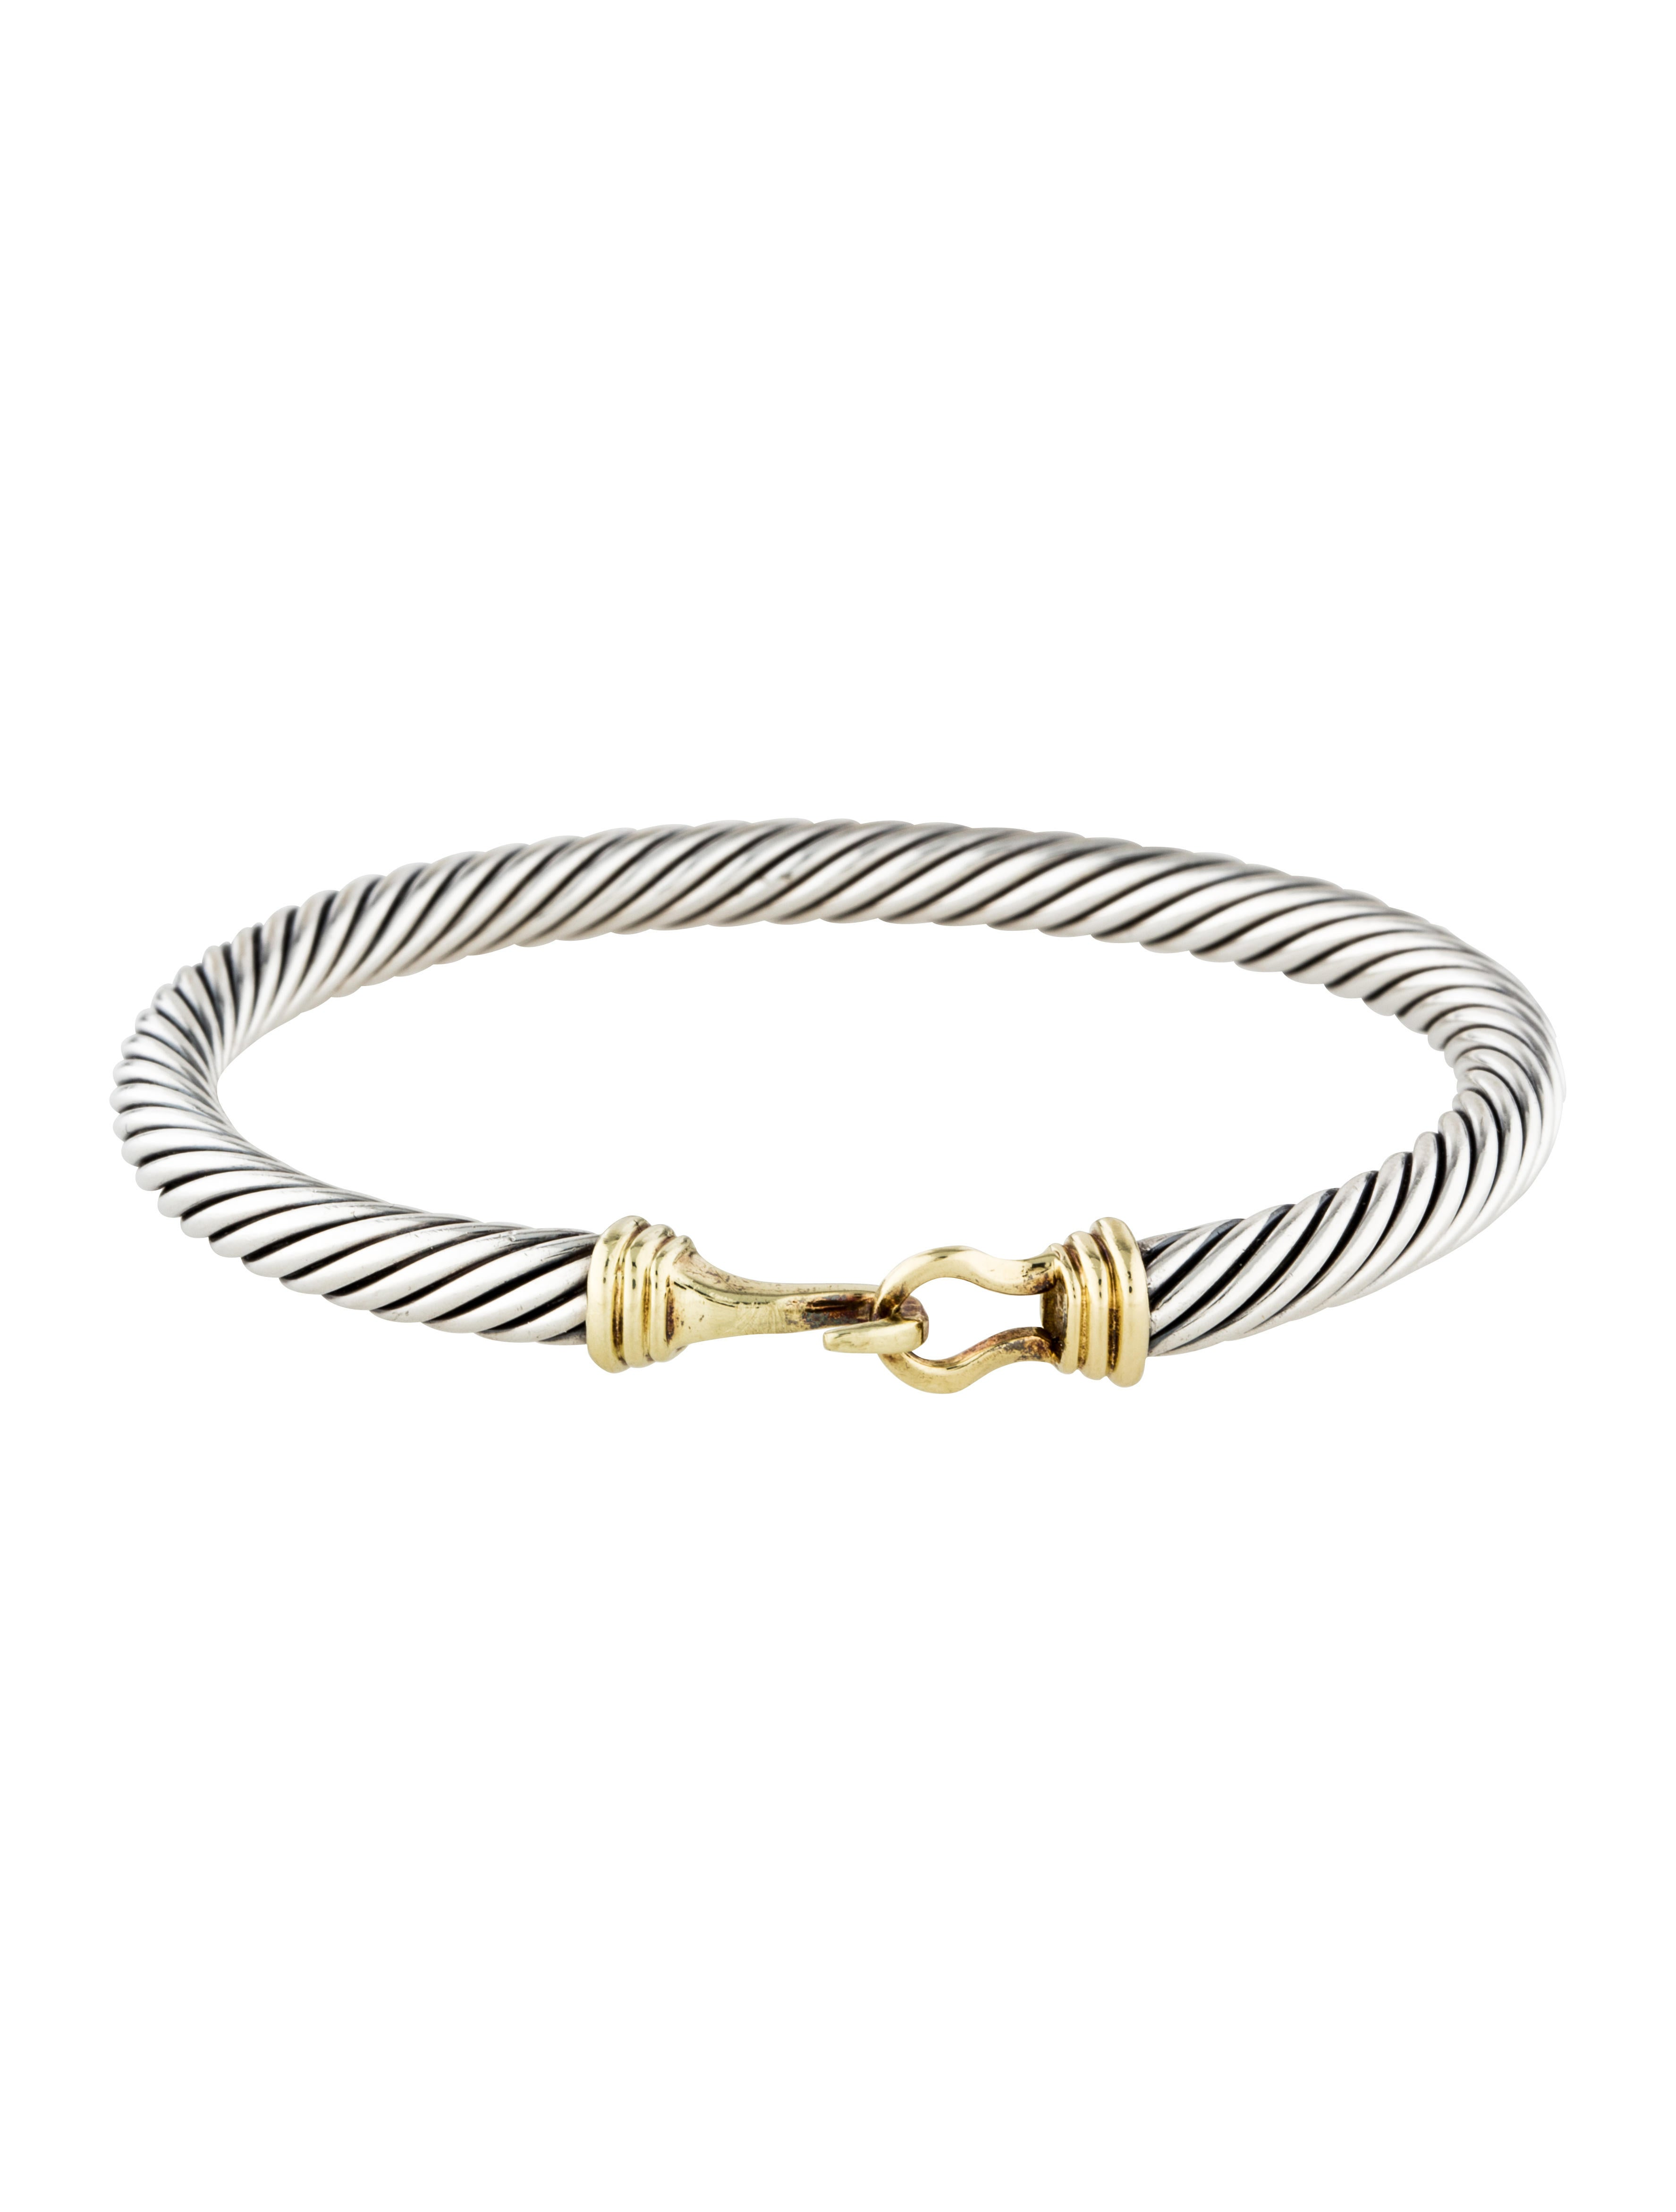 David yurman two tone cable classic buckle bracelet for David yurman inspired bracelet cable